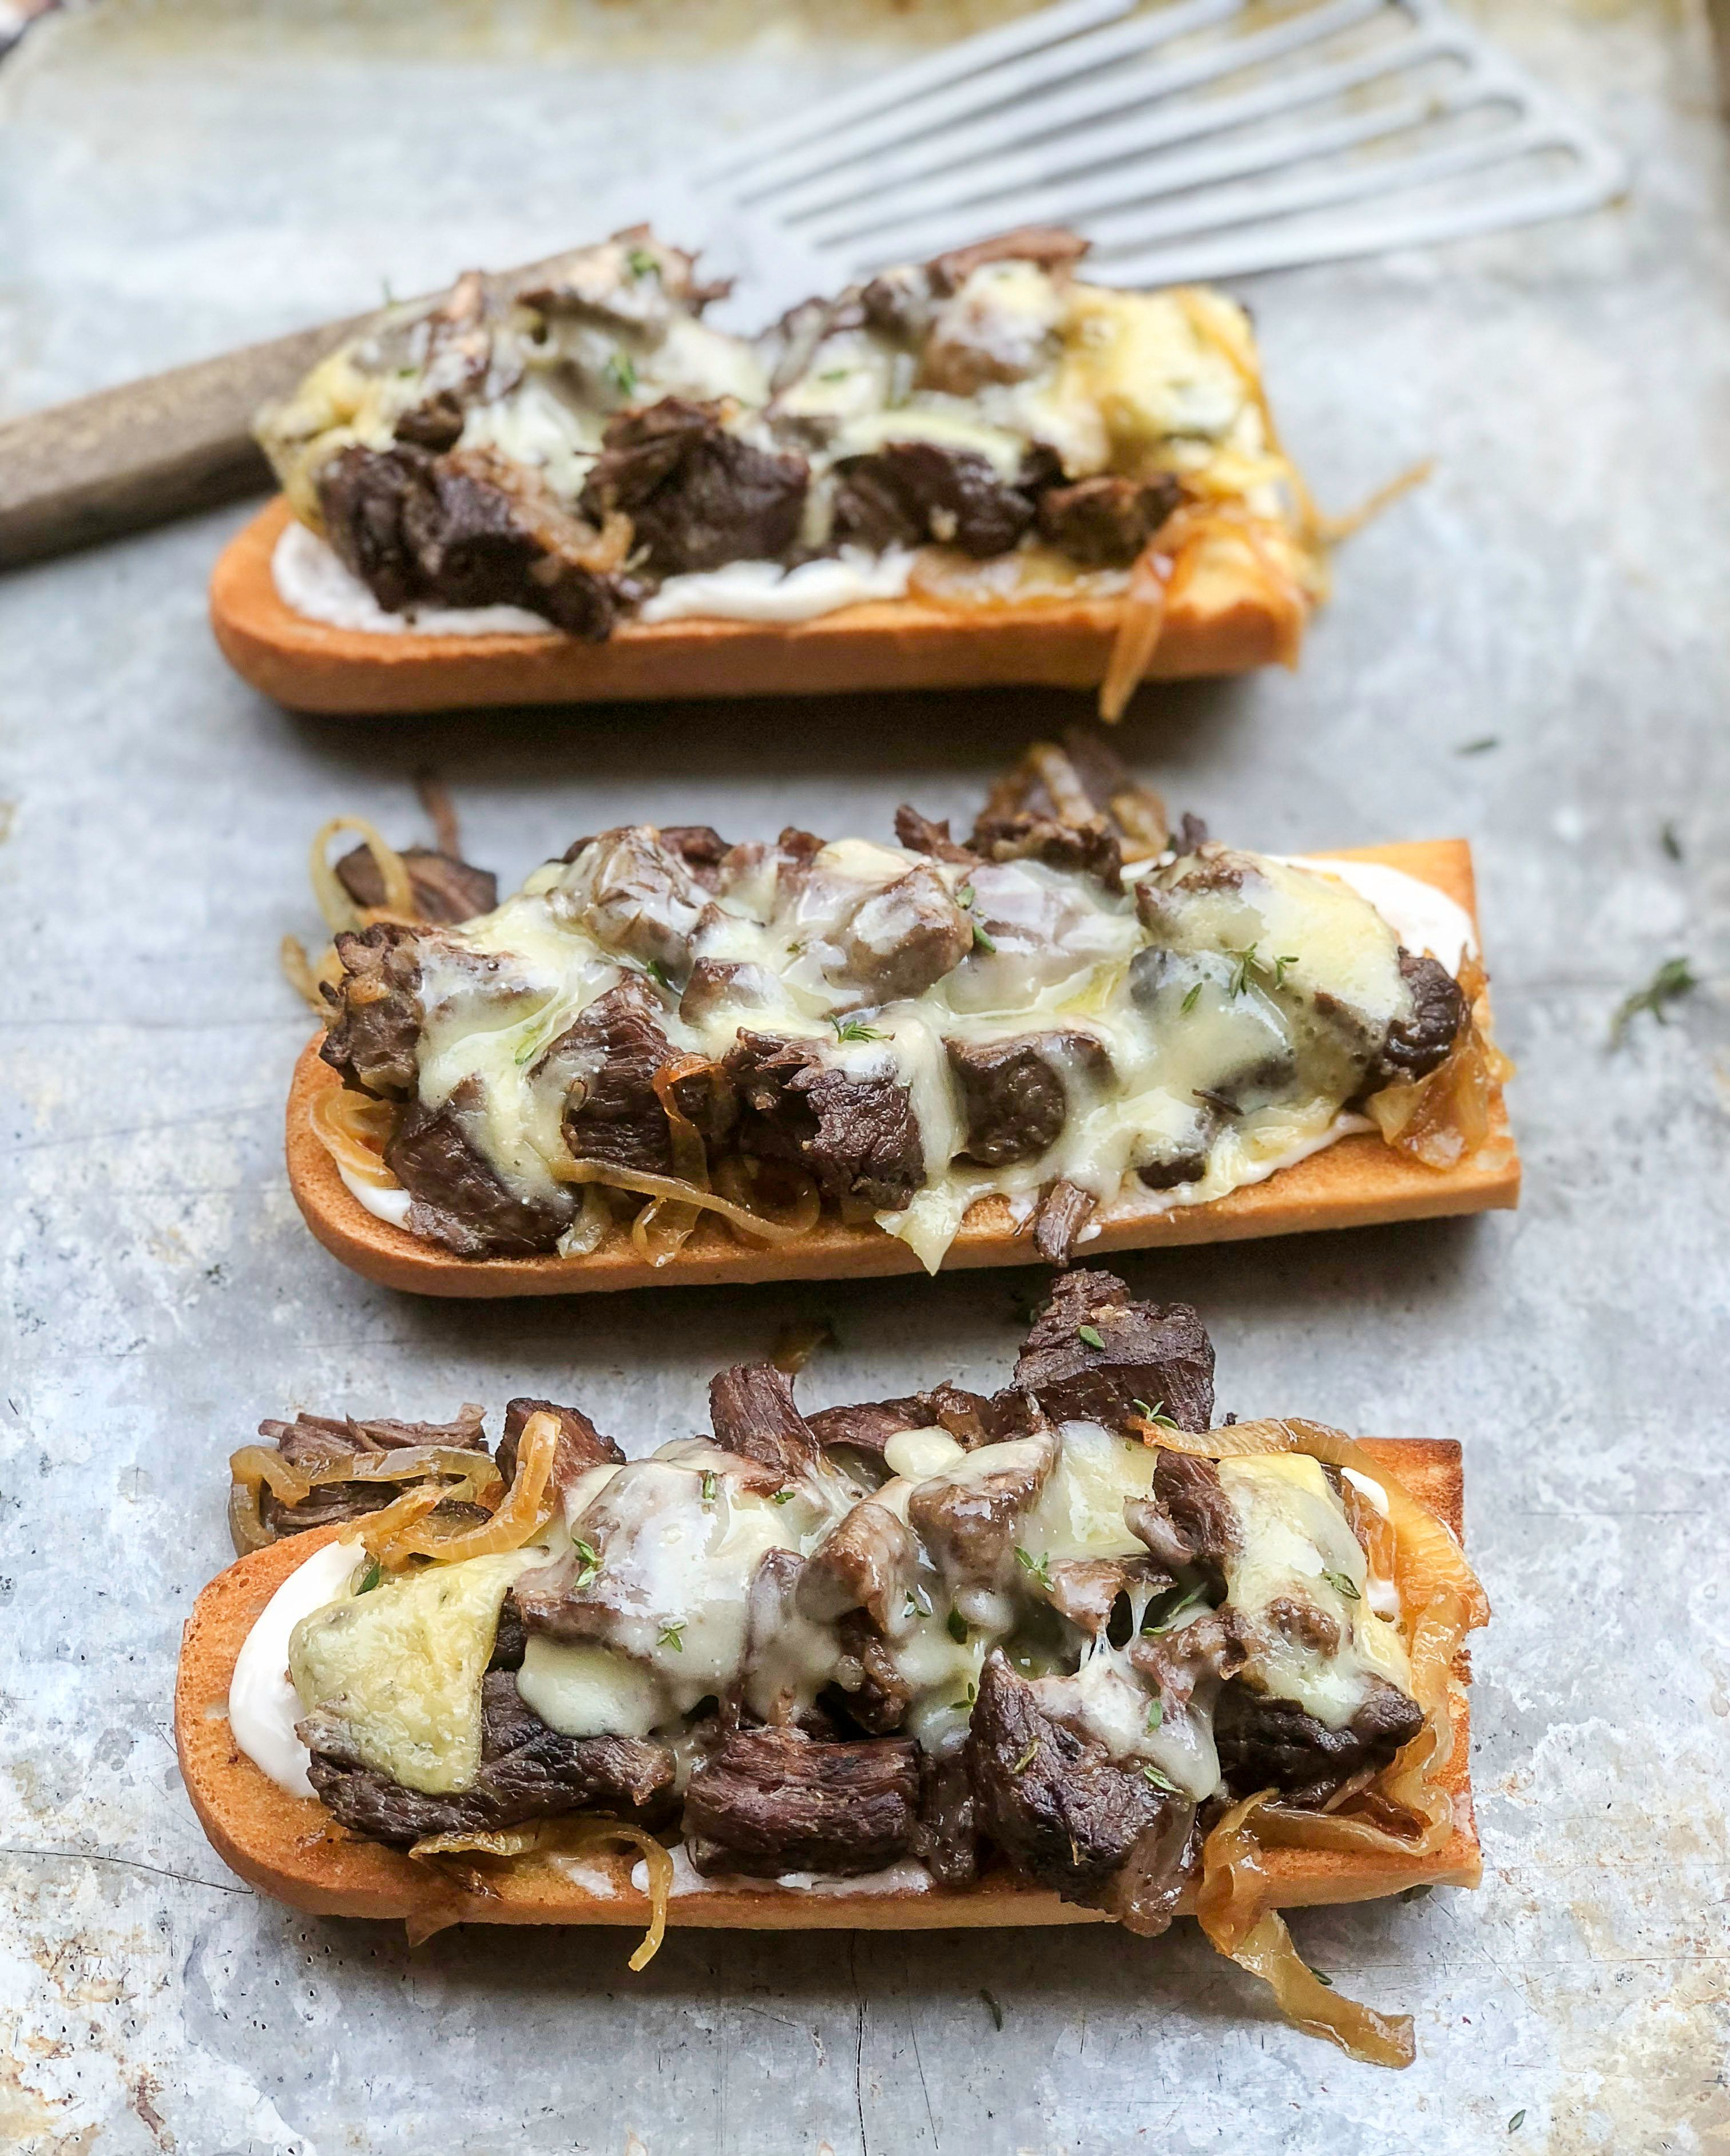 Toasted baguettes slathered in horseradish mayo, topped with roast beef, caramelized onions and cheese (in this case, raclette).